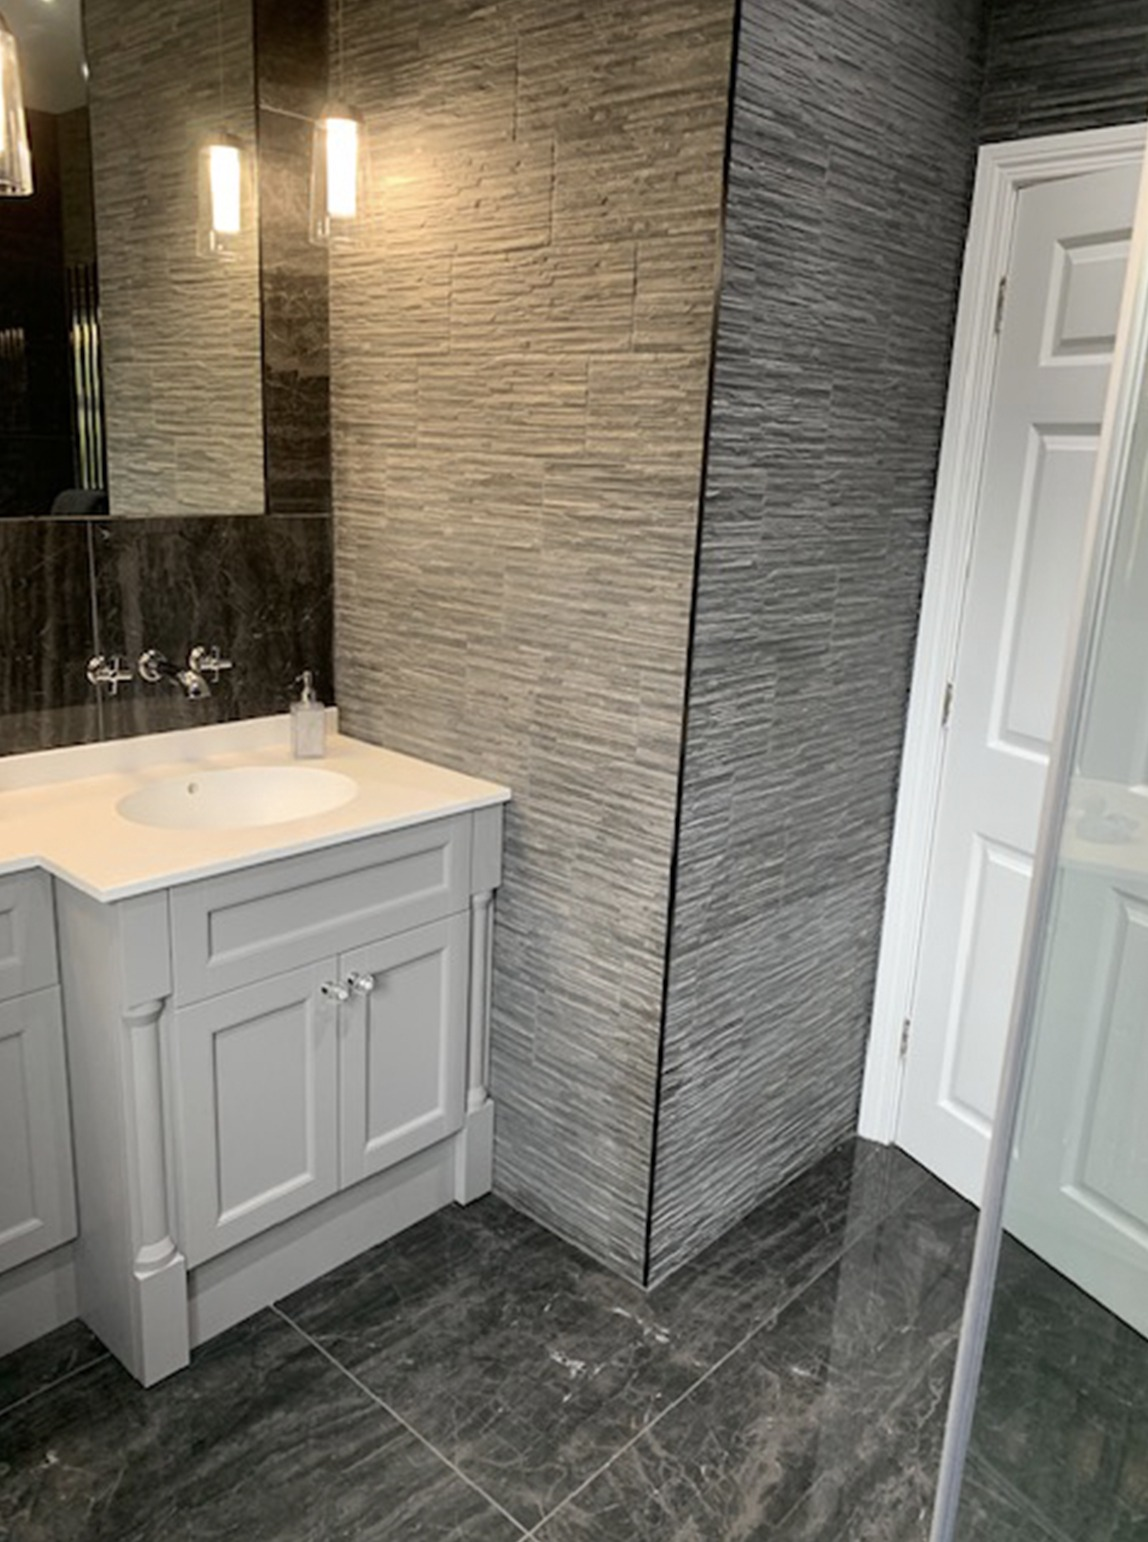 Bathroom refurbishment - Bathroom tiles